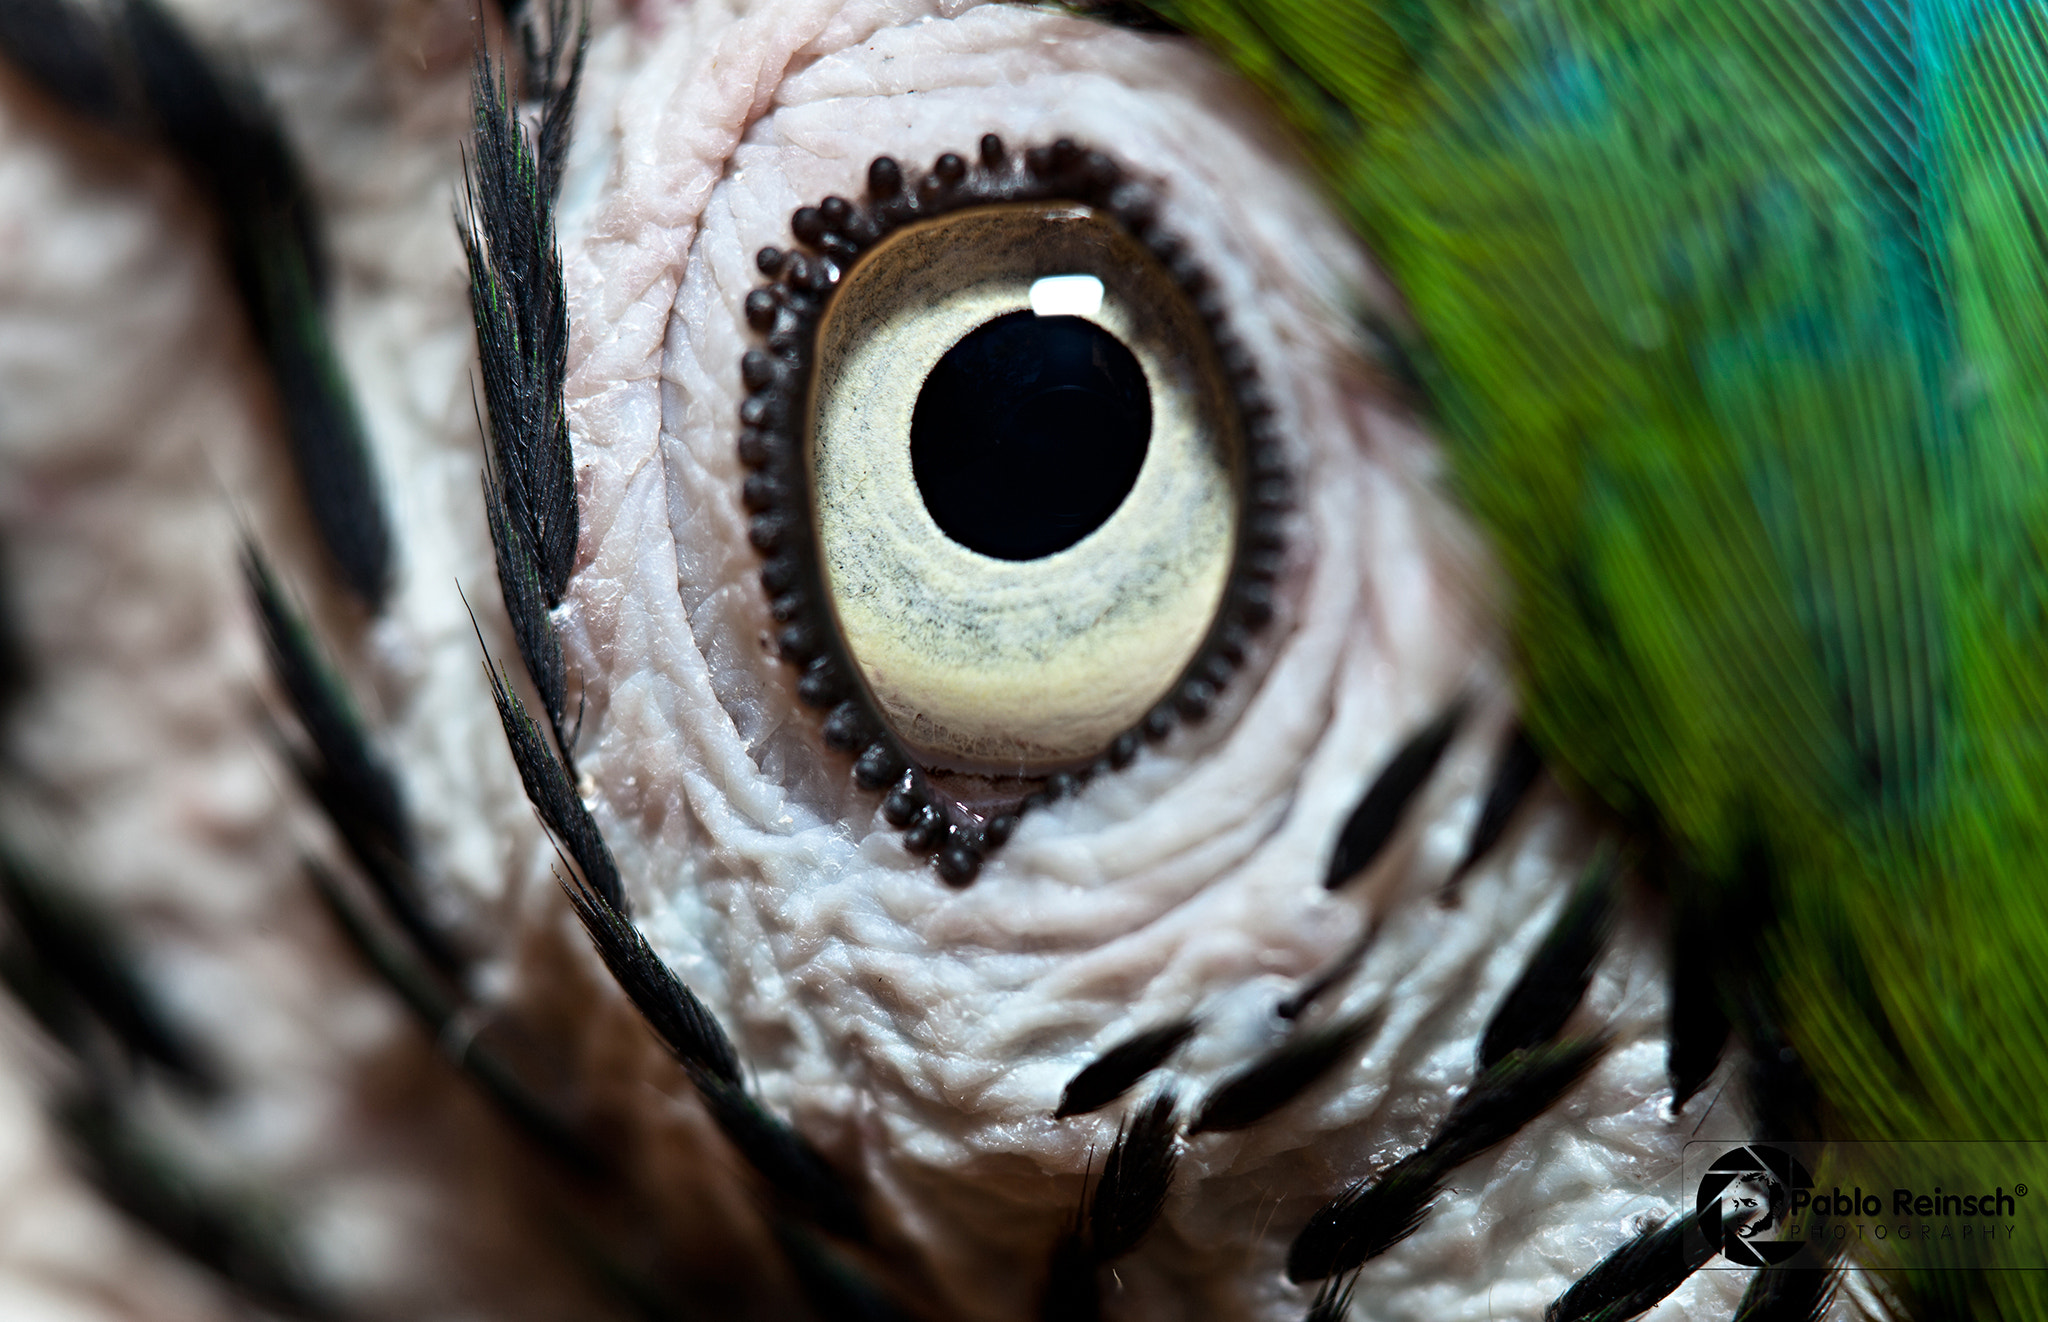 Photograph The eye by Pablo Reinsch on 500px